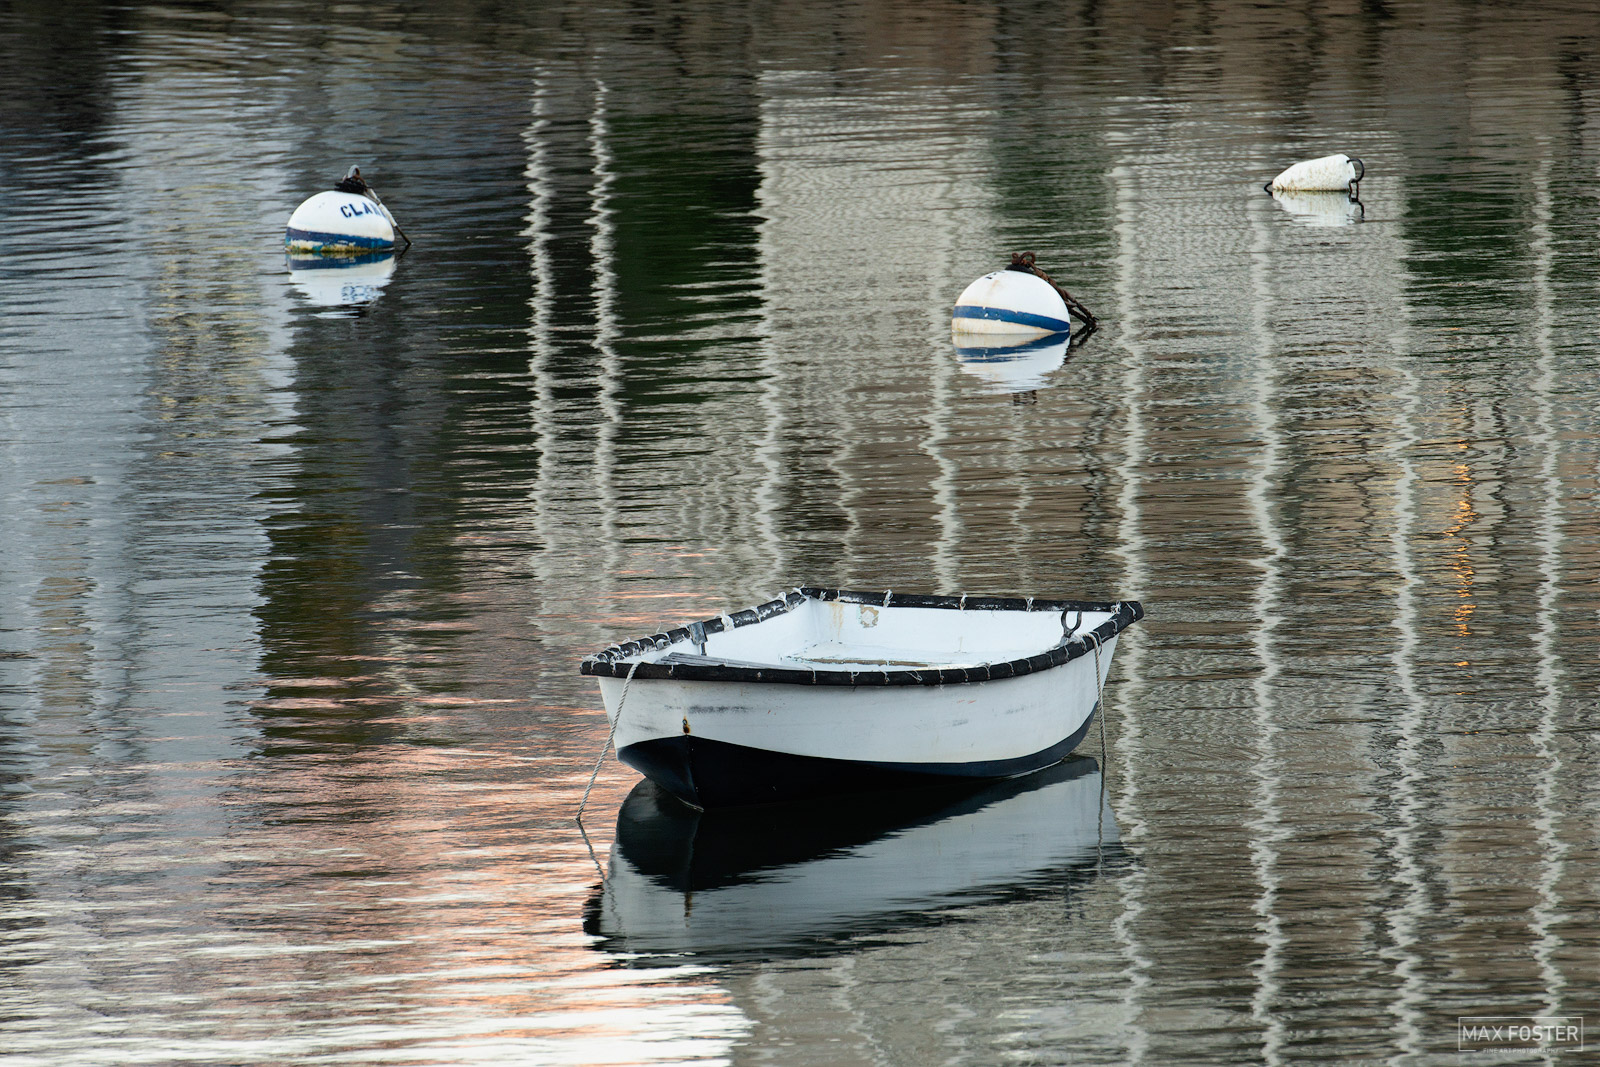 Fine Art Limited Edition of 100 This image of a lone boat was taken on a calm evening in Rockport Harbor, Massachusetts. Rockport...